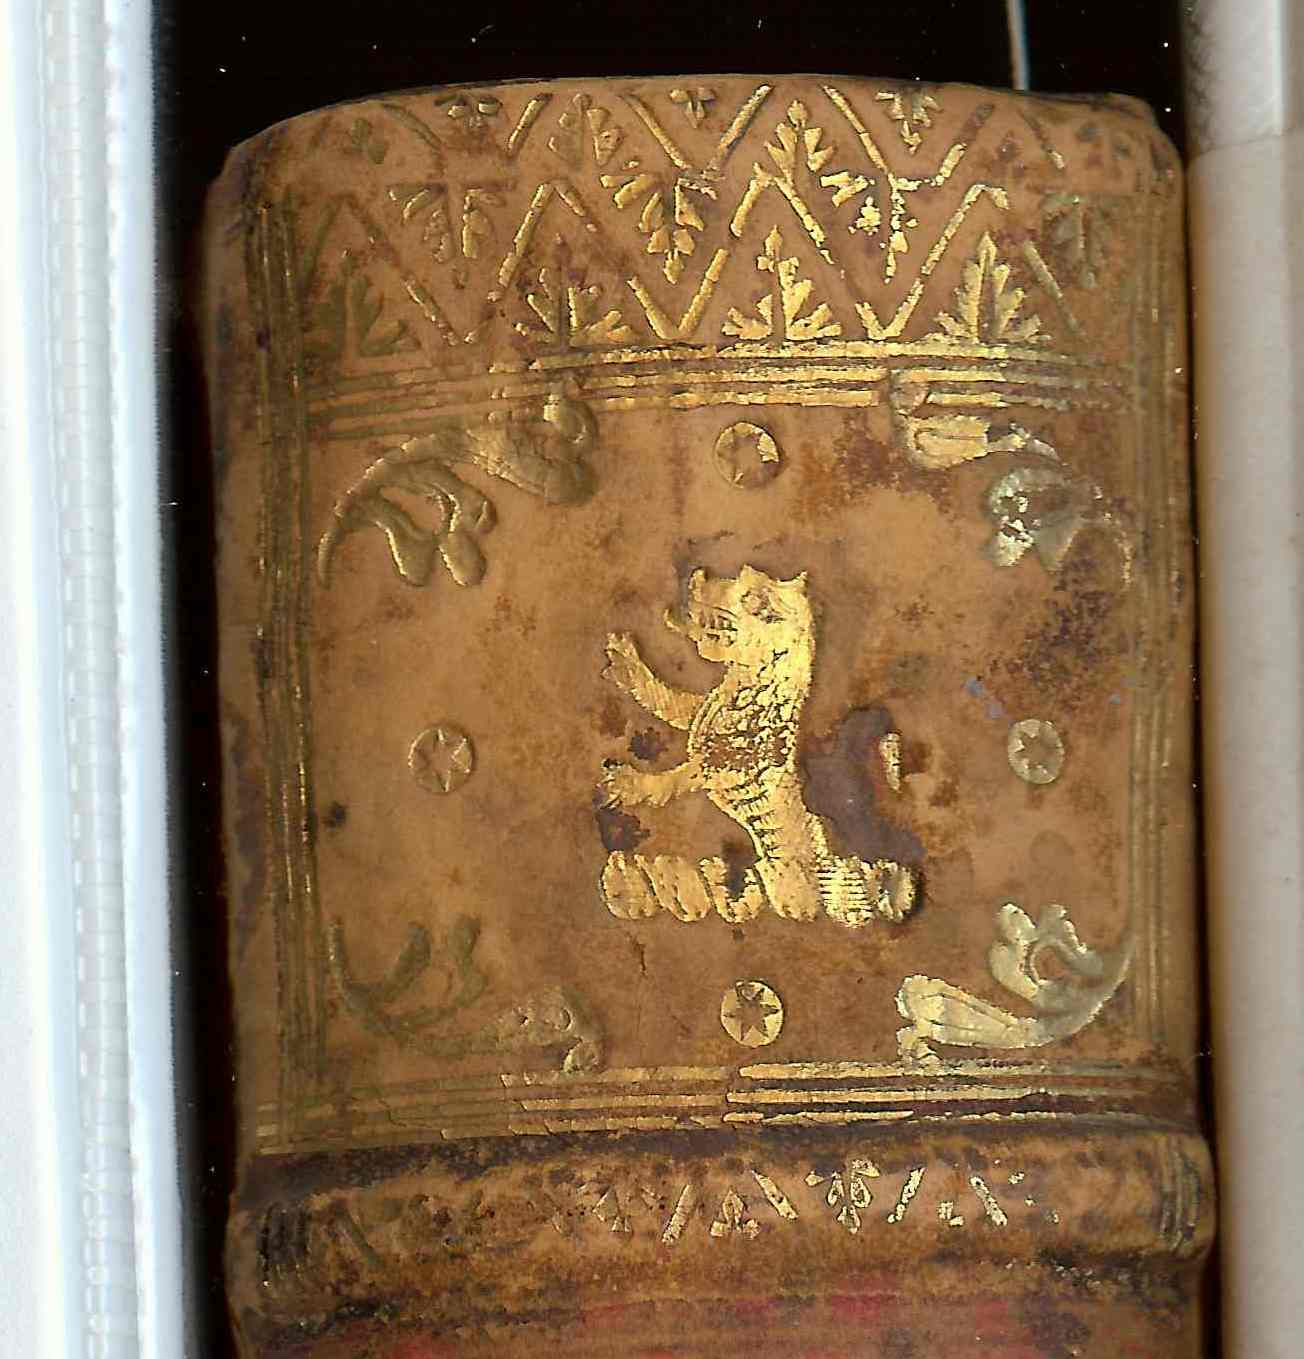 http://blogs.princeton.edu/rarebooks/images/Crest.on.44.F.4.Francheville.jpg